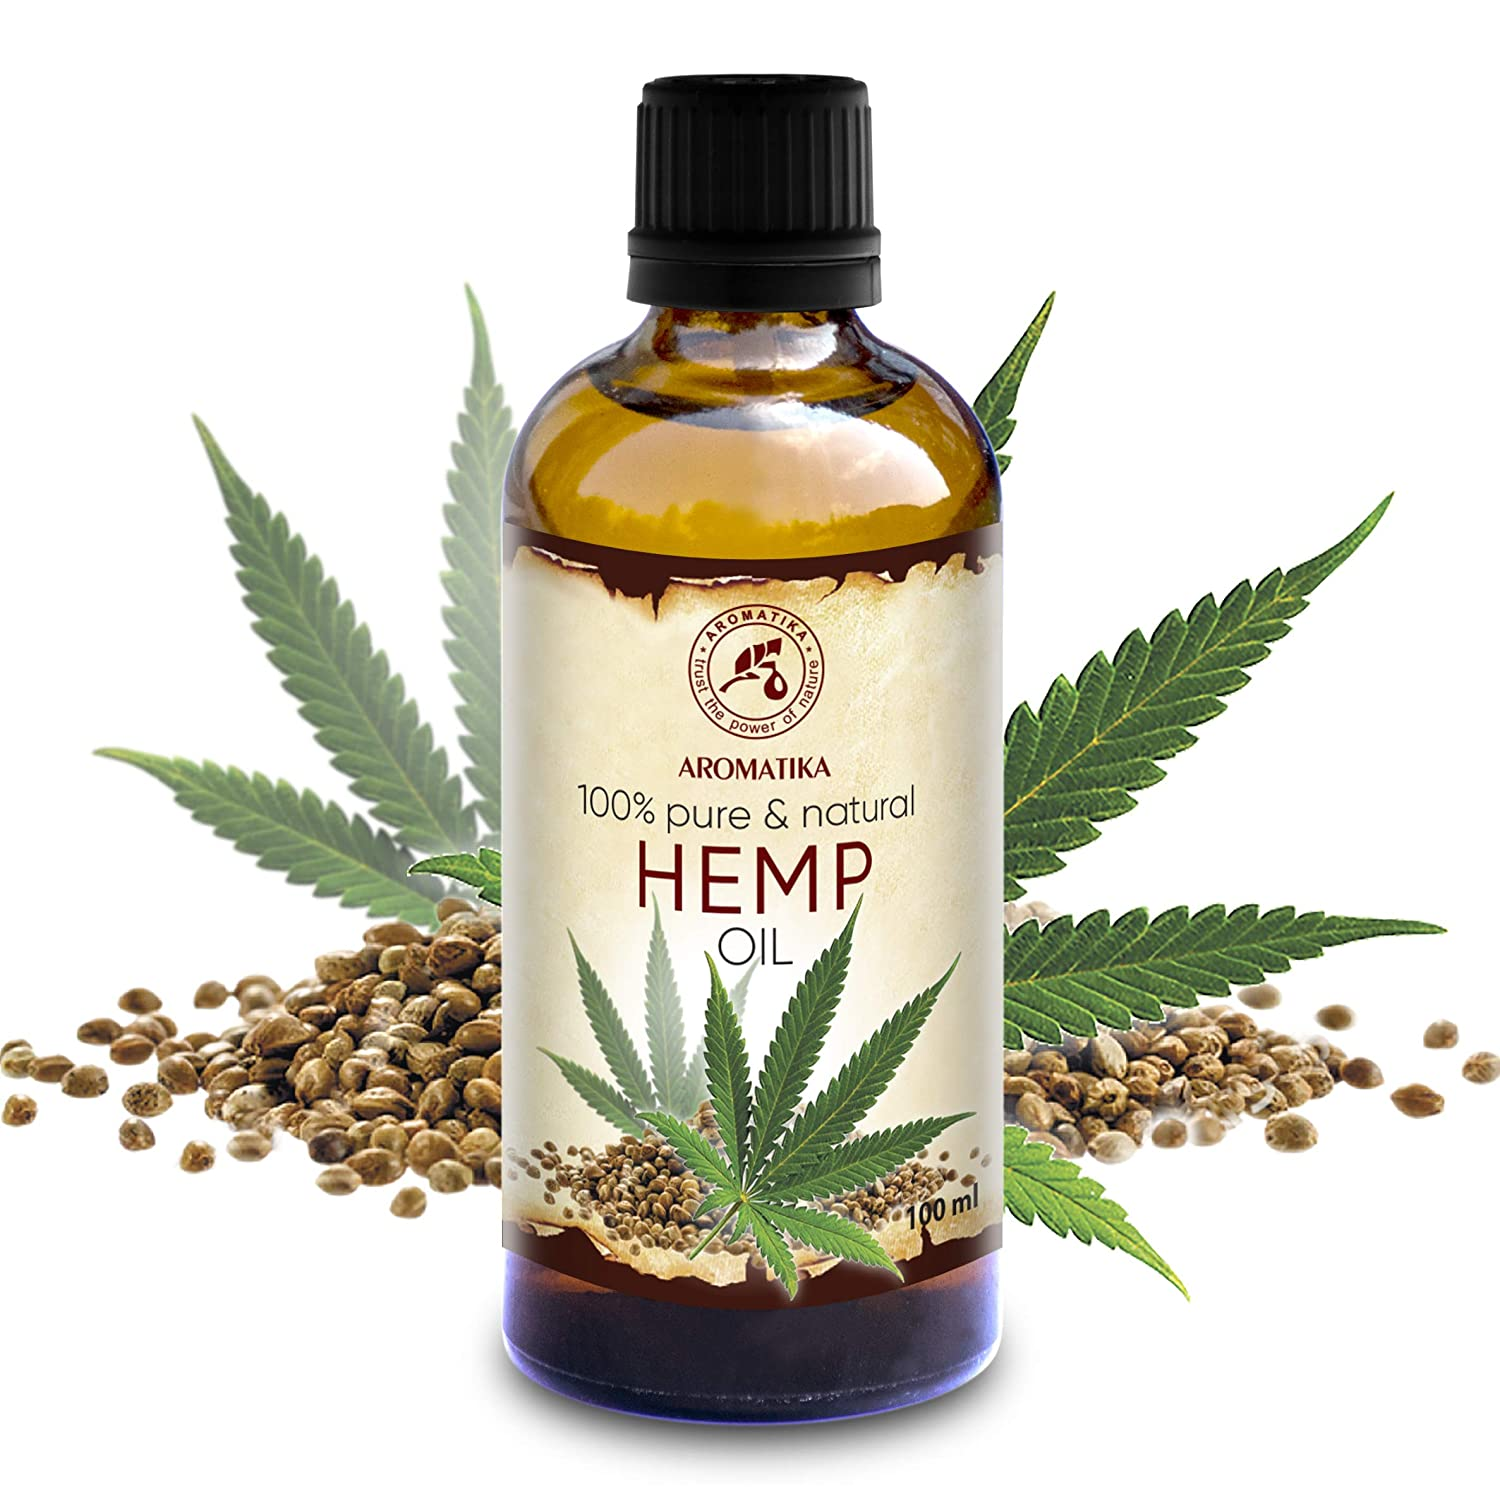 Hemp Oil 3.4oz - Cannabis Sativa Seed Oil - 100% Pure & Natural Hemp Seed Oil - Benefits for Skin - Hair - Face - Body - Great for Beauty - Relax - Massage - Glass Bottle